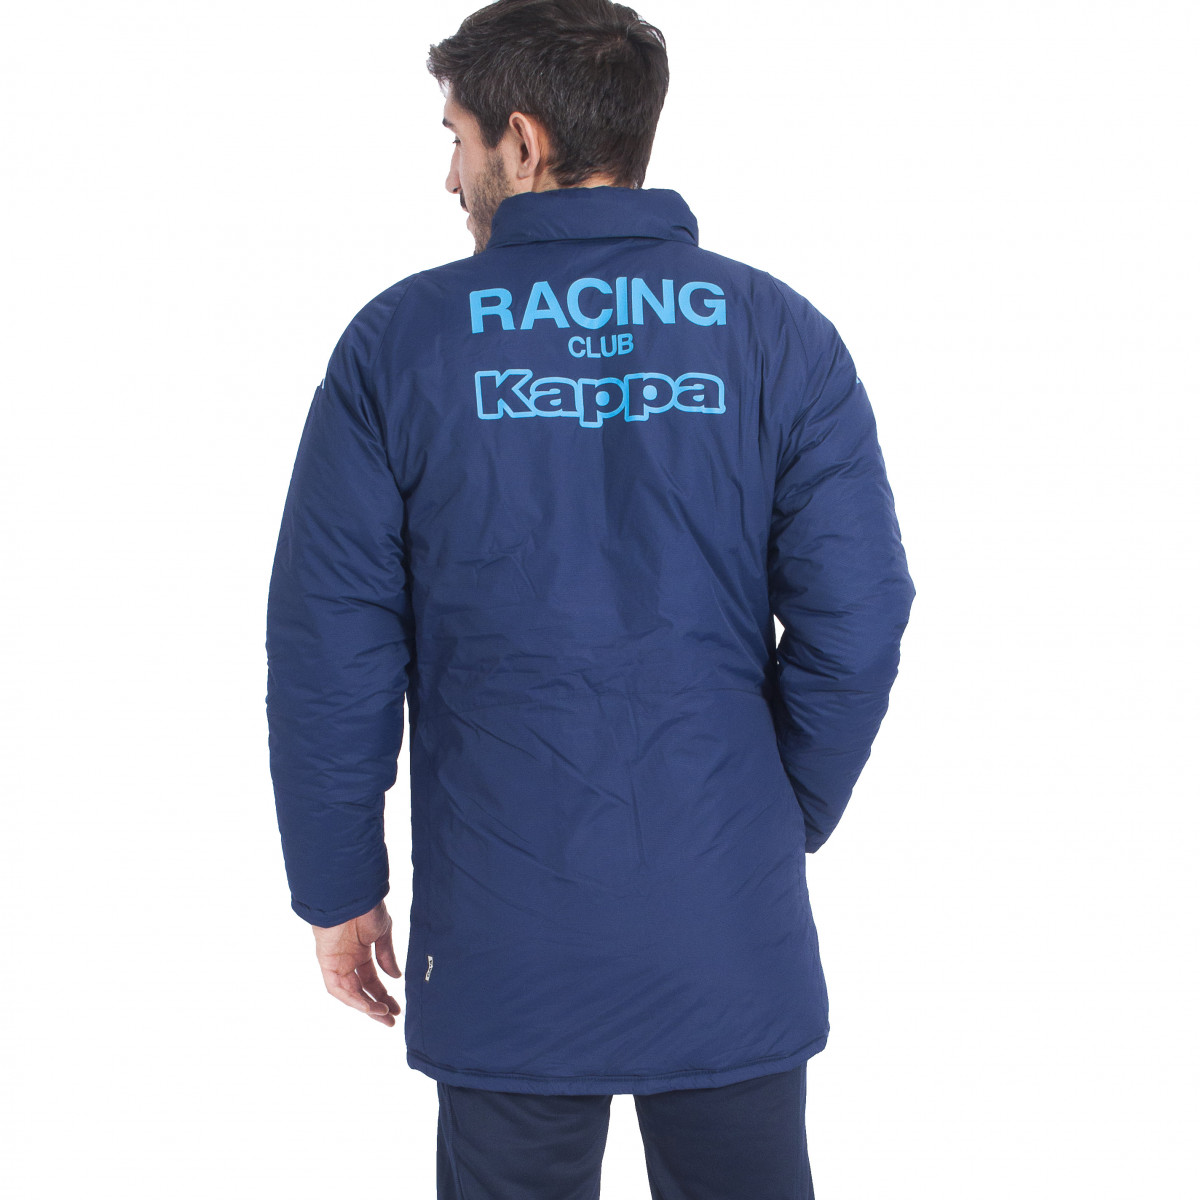 Campera Kappa Racing 82ce789e4be70